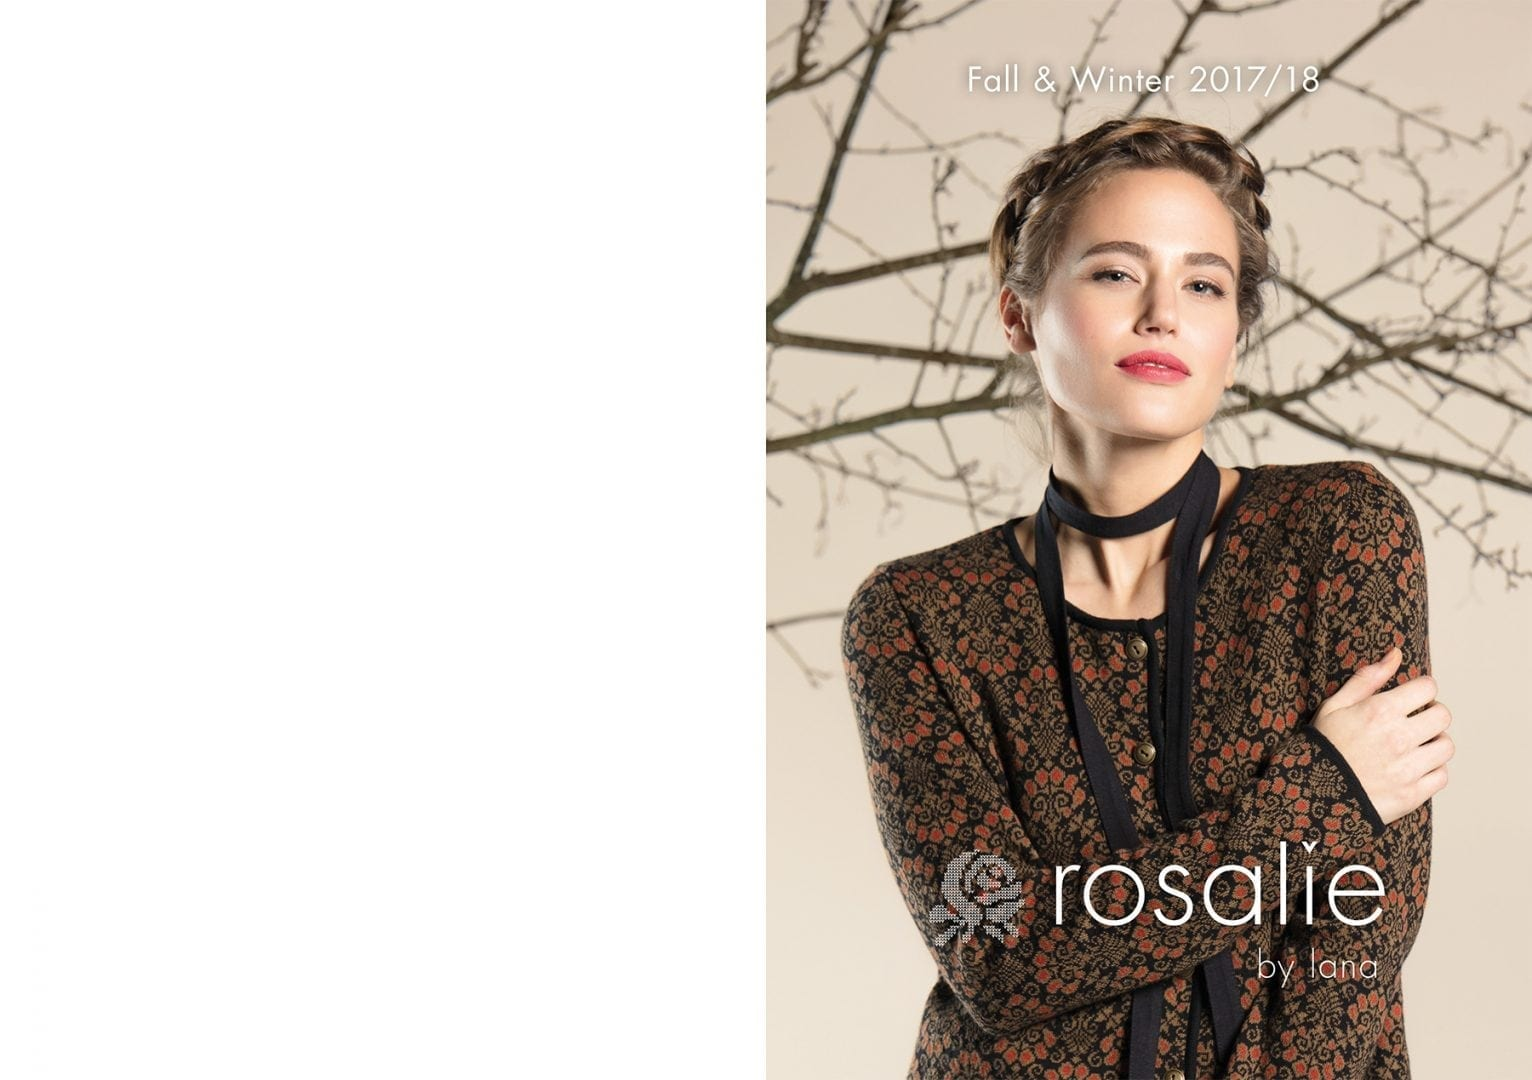 Rosalie_Katalog_FW_2017_18_final_hr-1